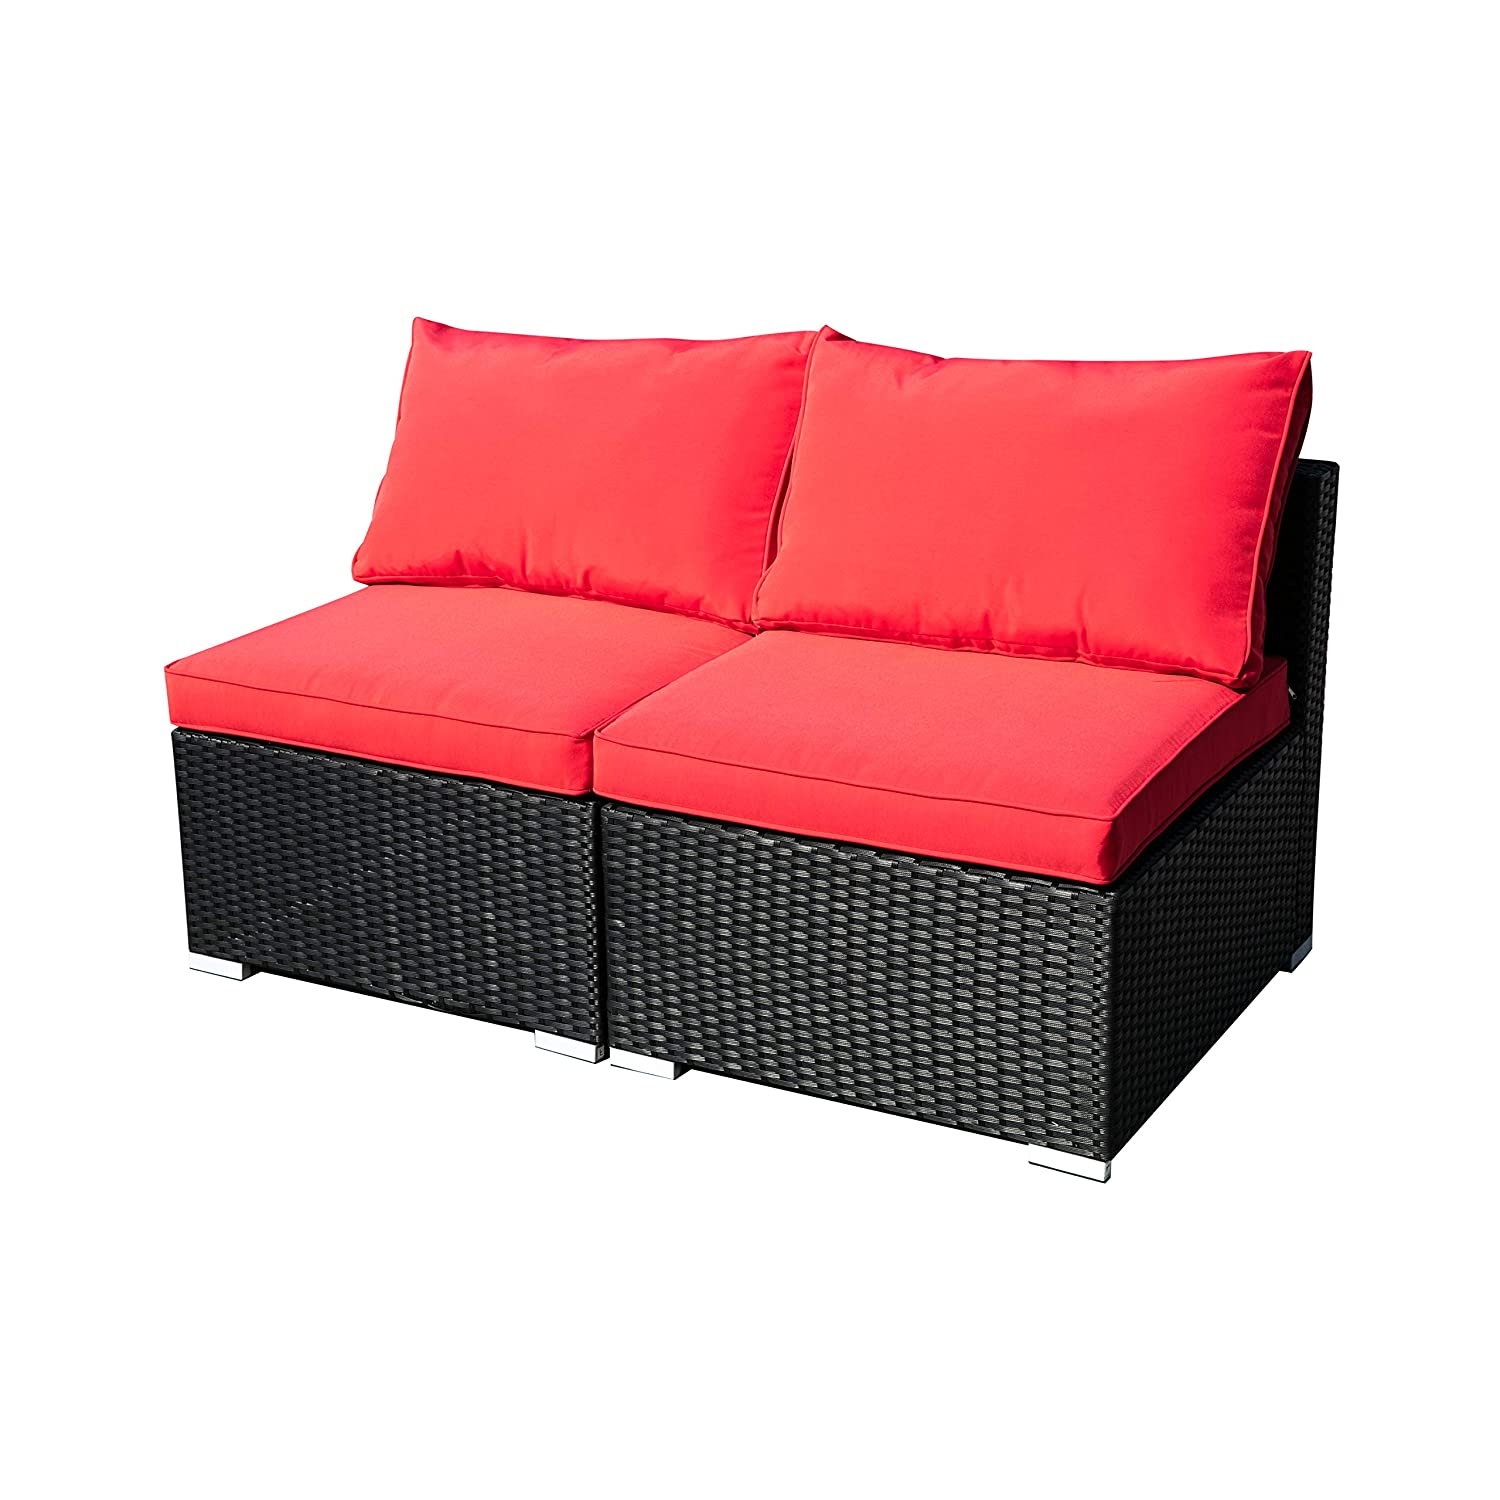 Leisurelife 2 Pcs Outdoor Patio Furniture Set Red, Rattan Sofa with Cushion and Clips, PE